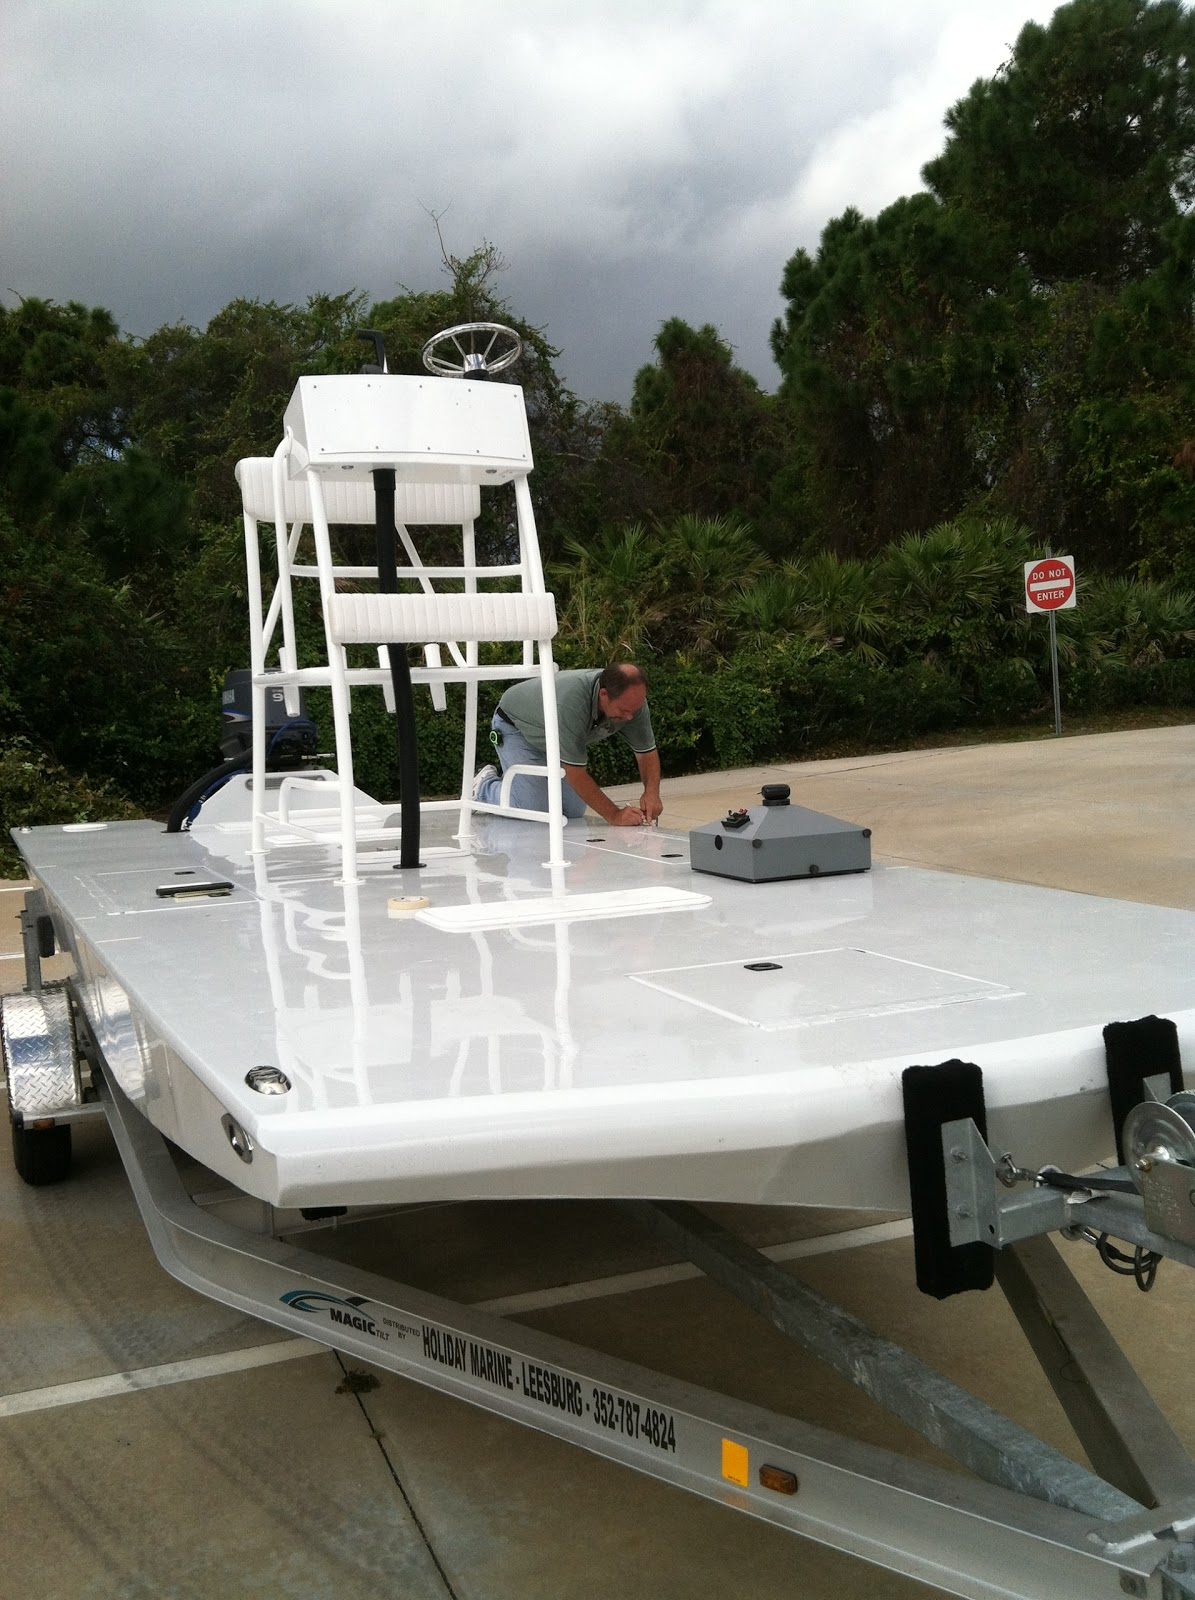 Seadek Marine Products Durable And Shock Absorbent Pe Eva Foam Power Boat Installation Fishing Hunting Kayak Led 210 Digitizing A New Reflex 20 Flots From Works Out Of Leesburg Fl Once The Pads Install Are Finished Ill Post Some Follow Up Shots